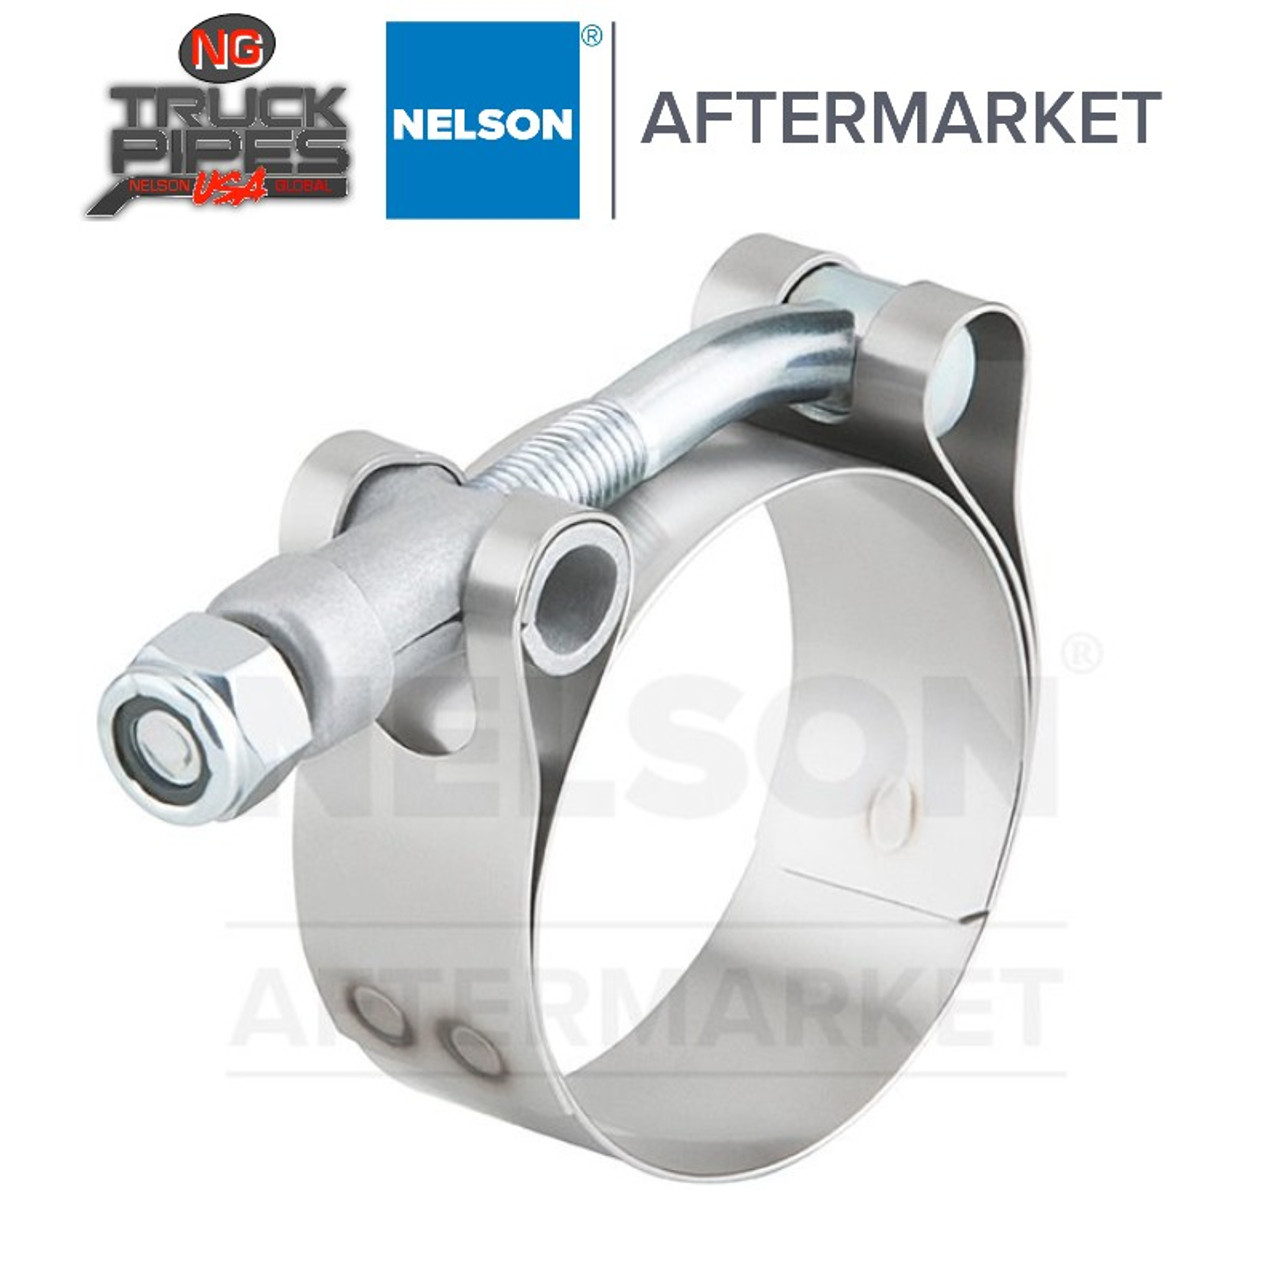 """5"""" T-Bar Exhaust Clamp for Air Intake Applications Nelson 89584K"""